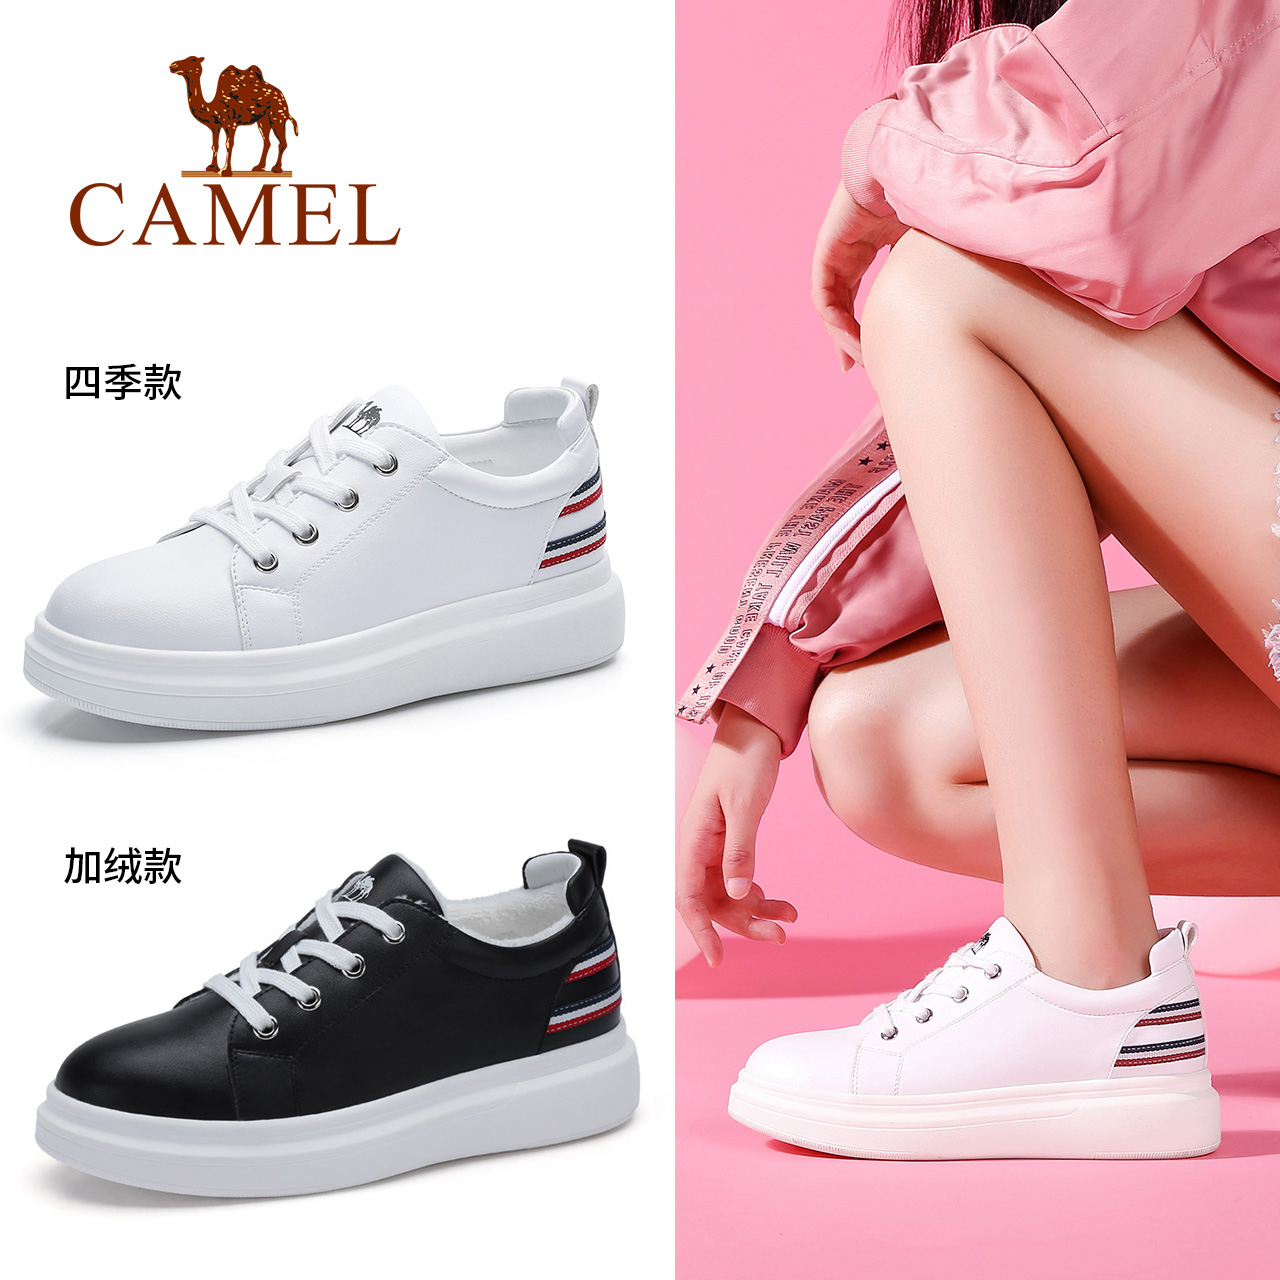 Camel women's shoes 2018 autumn and winter new casual increase thick platform white shoes wild fashion sports shoes women